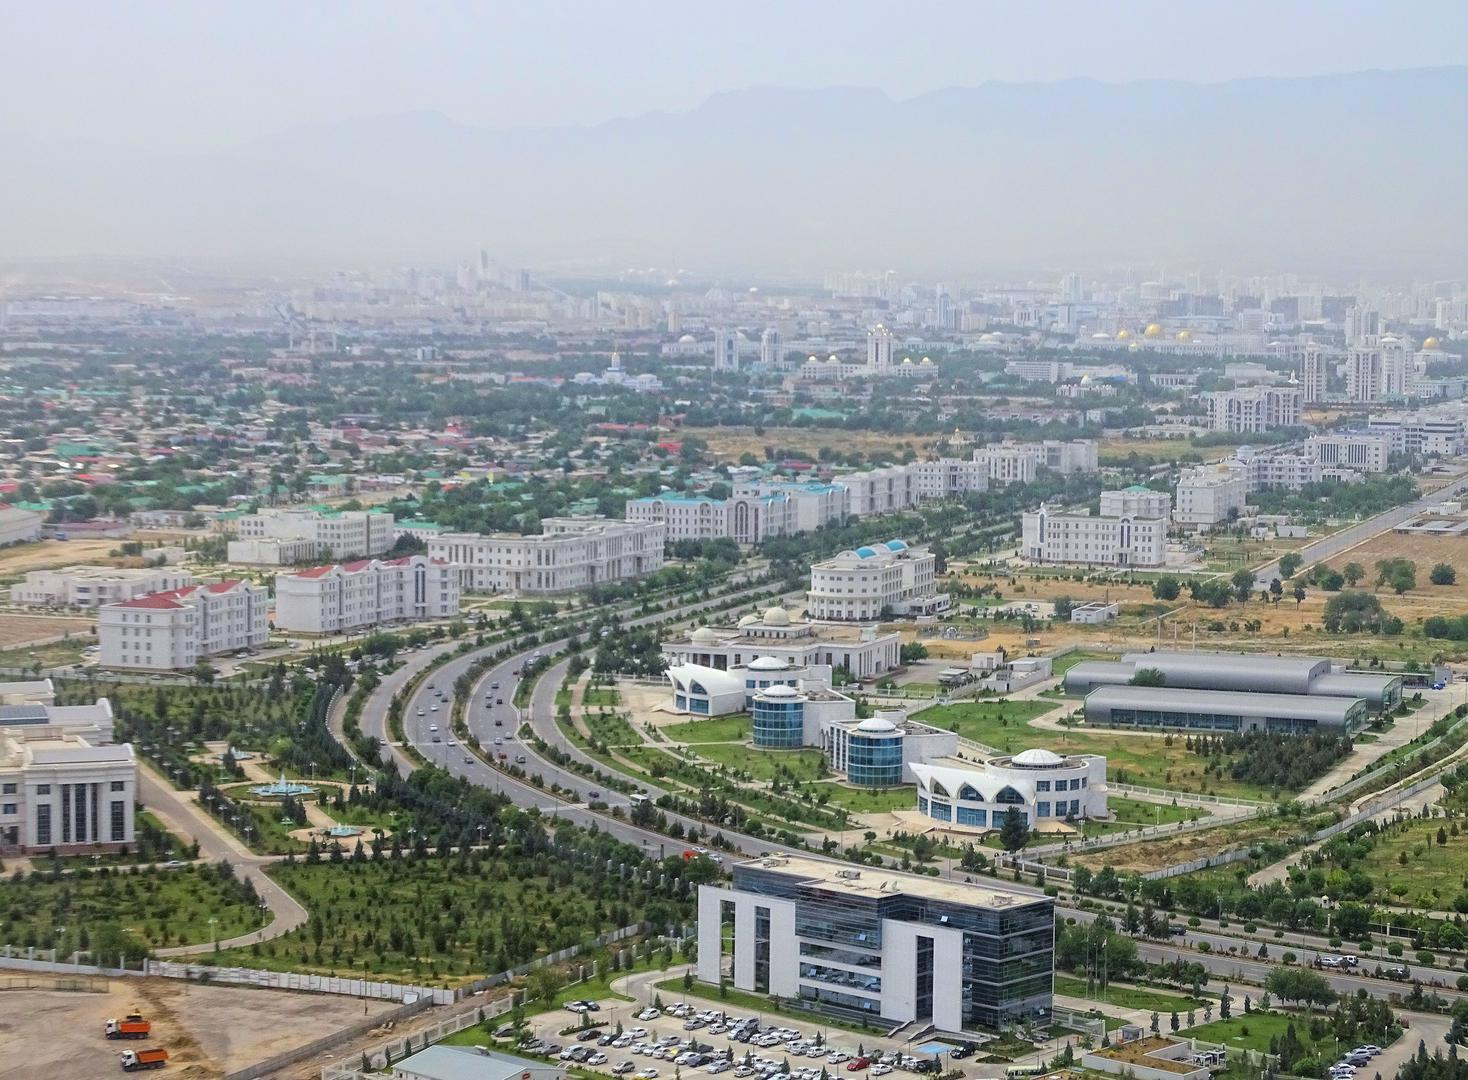 End A Dissident's Ordeal in Turkmenistan | Human Rights Watch